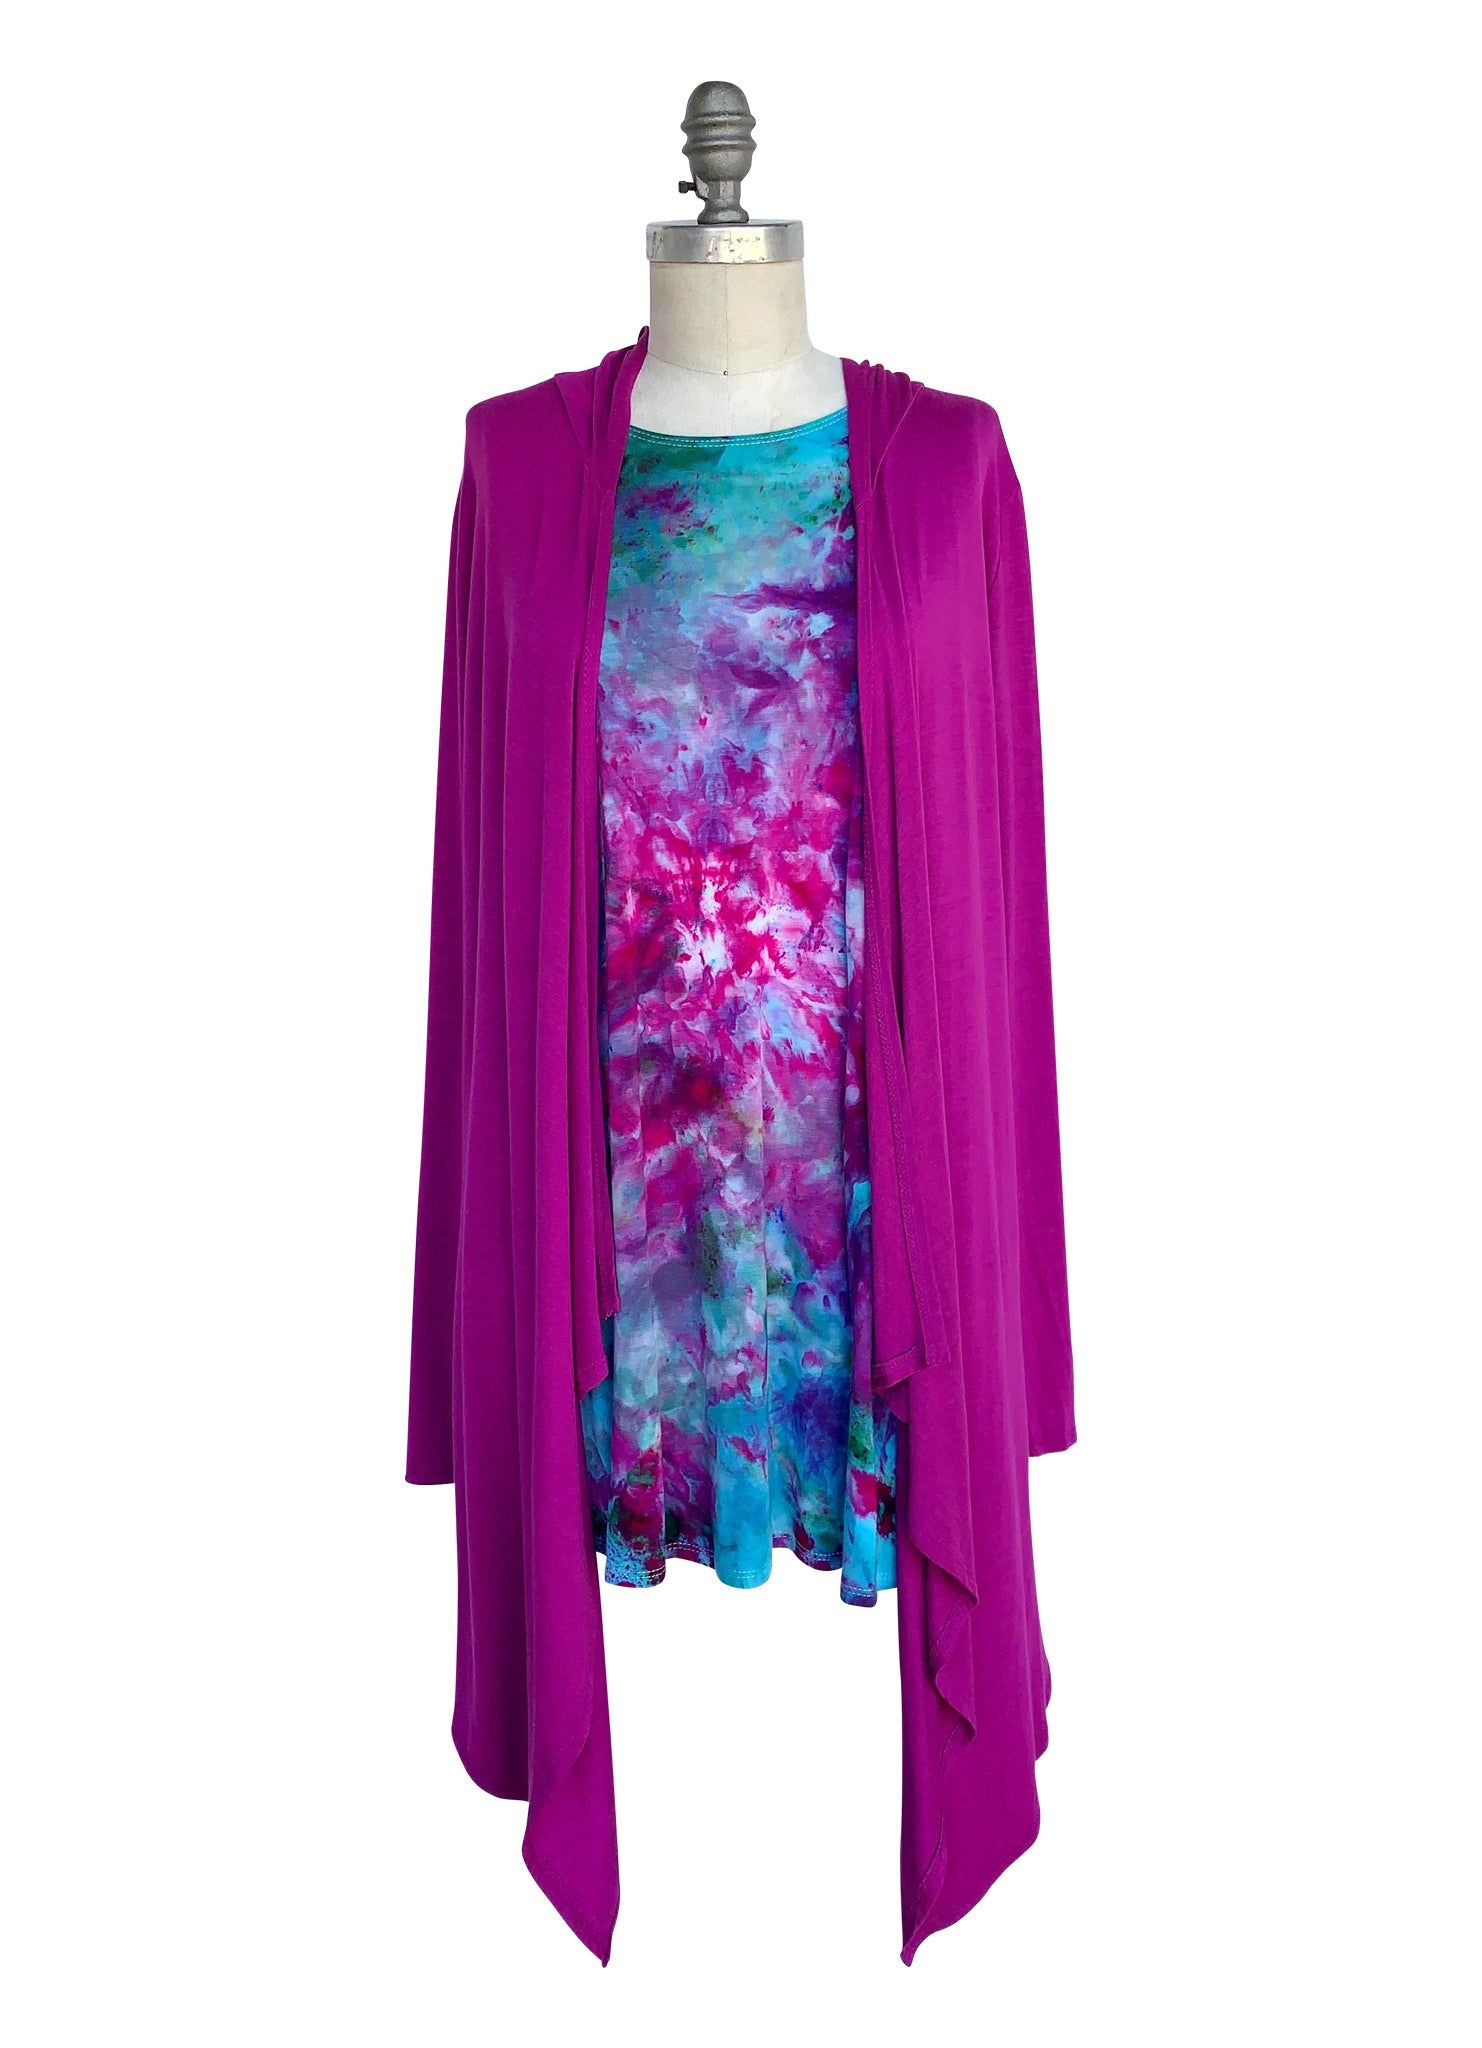 A-Line Tunic Tank and Drape Front Hoodie Bundle in Magenta-Confetti - Top - Dyetology